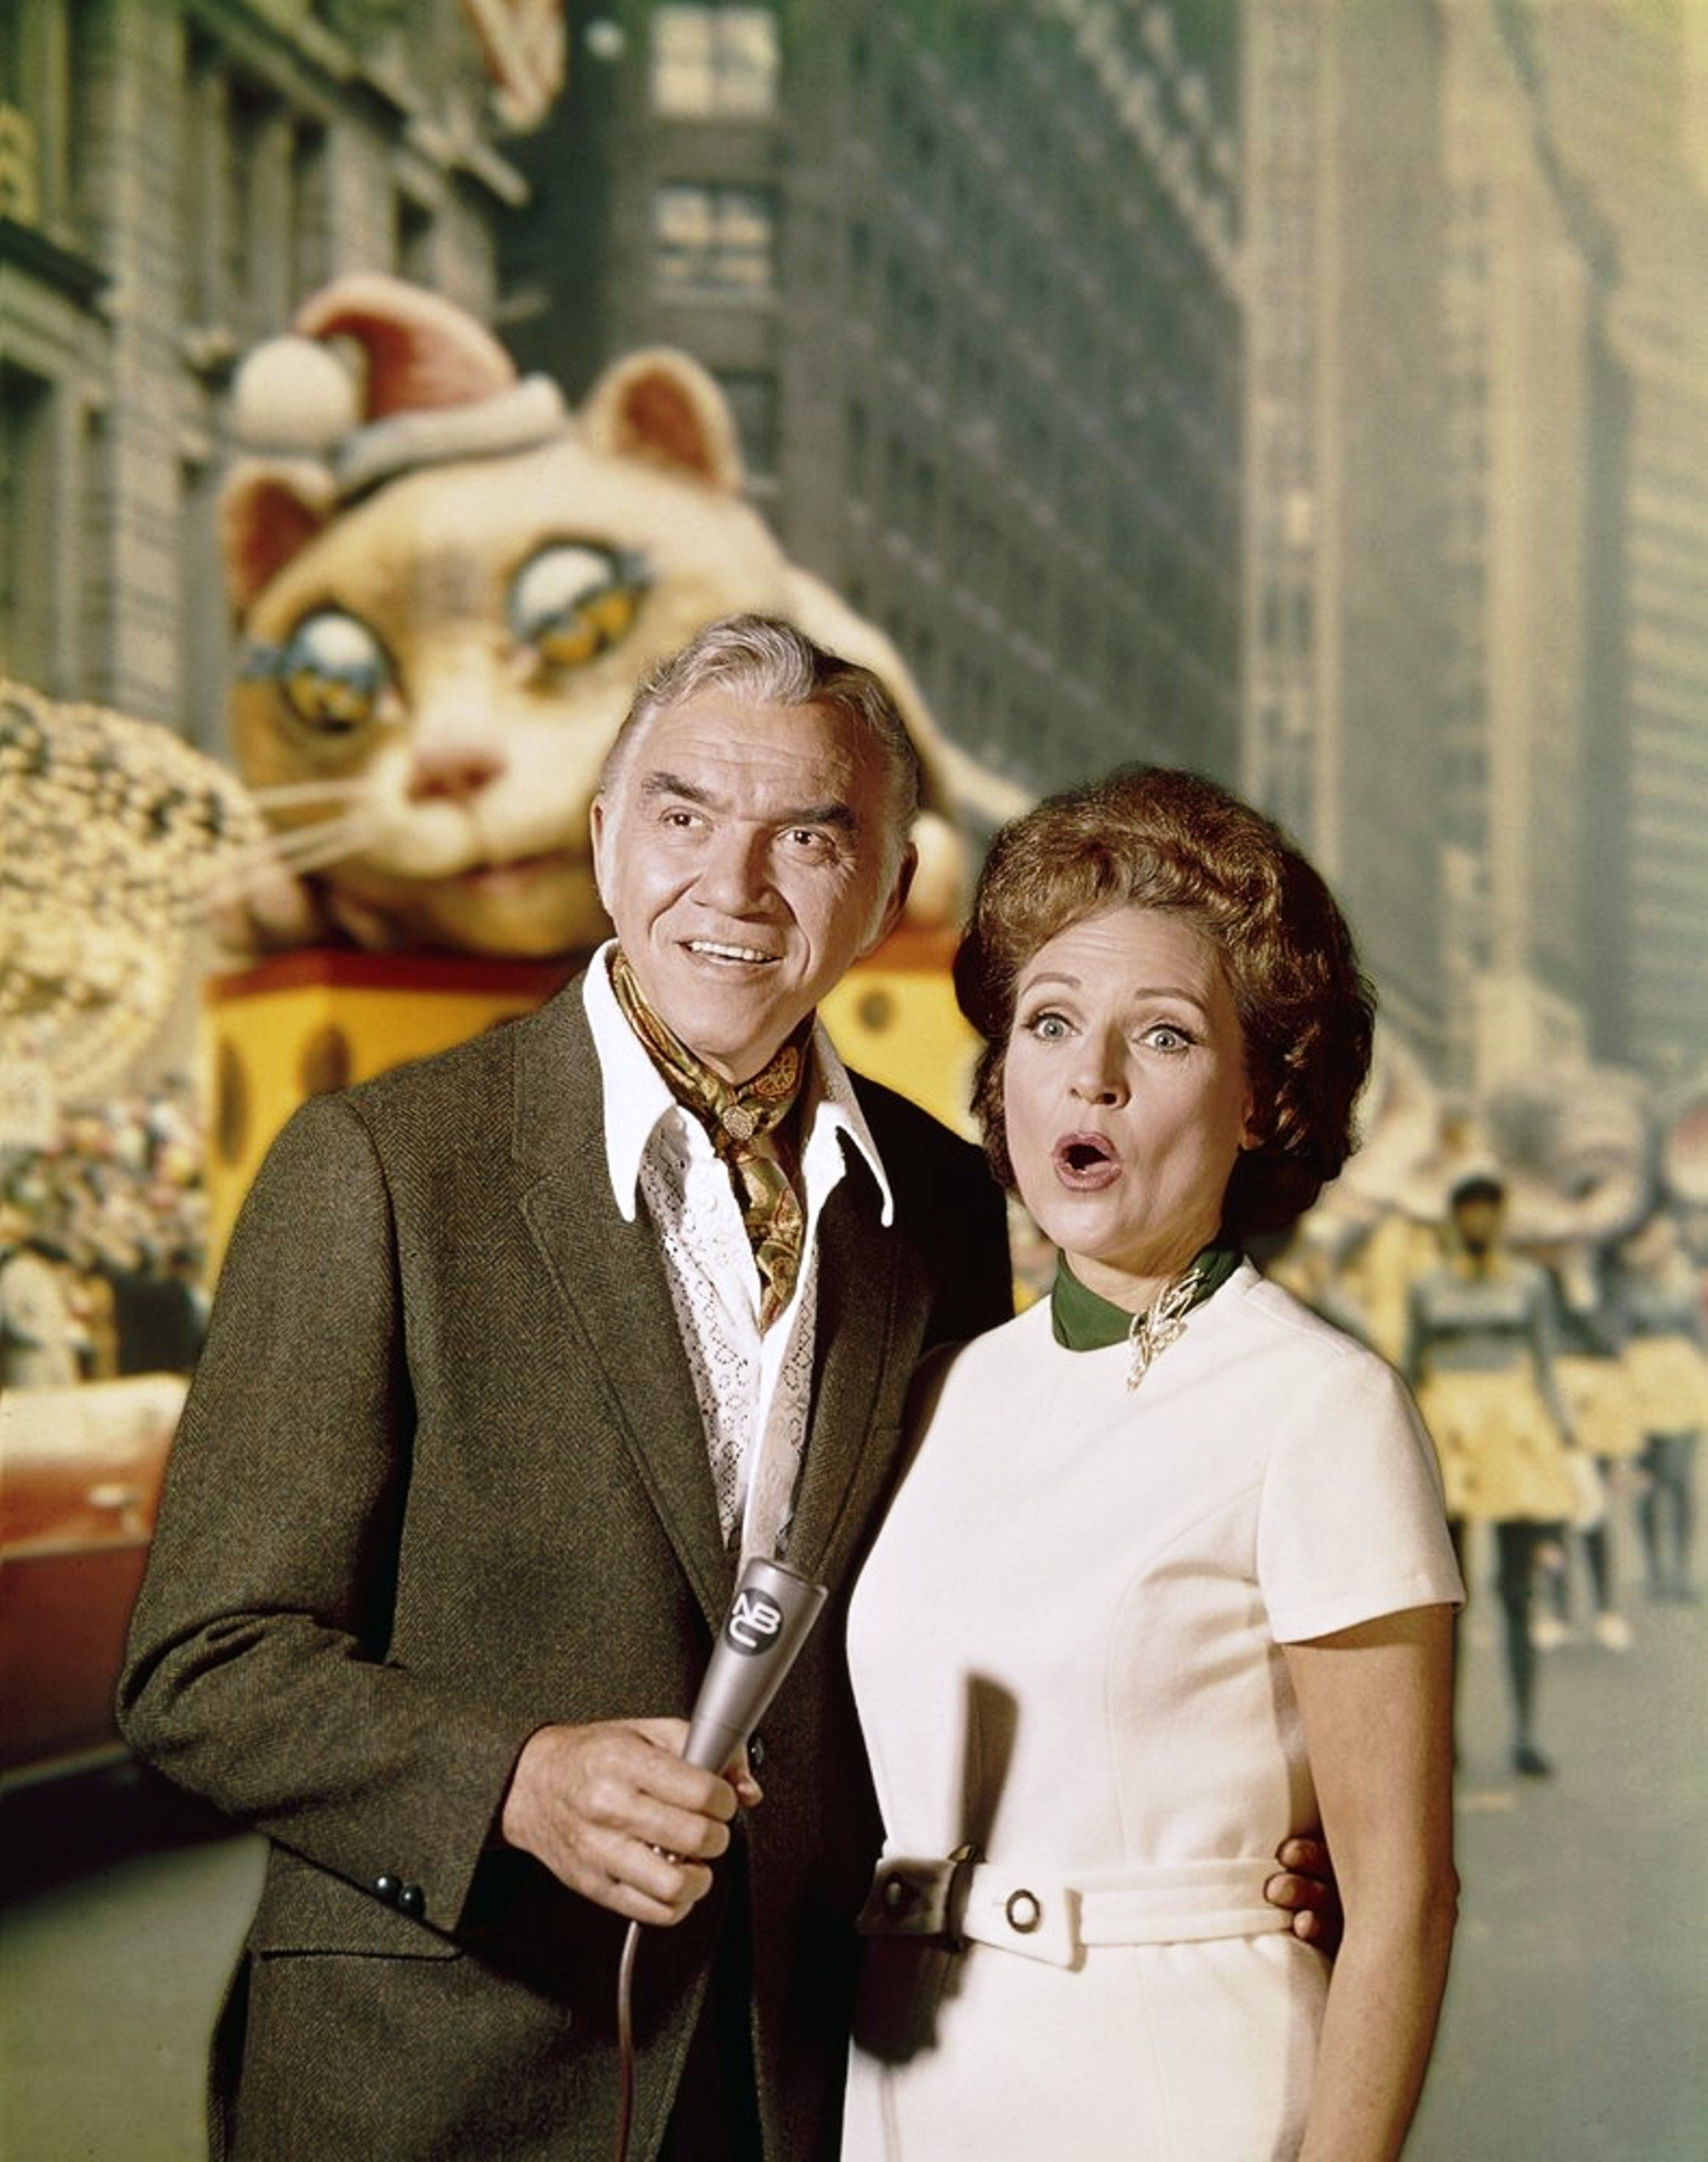 Nbc Tv Macy S Thanksgiving Day Parade Publicity Still Late 1960s L To R Lorne Greene Betty White Greene And Thanksgiving Parade Betty White Macys Parade